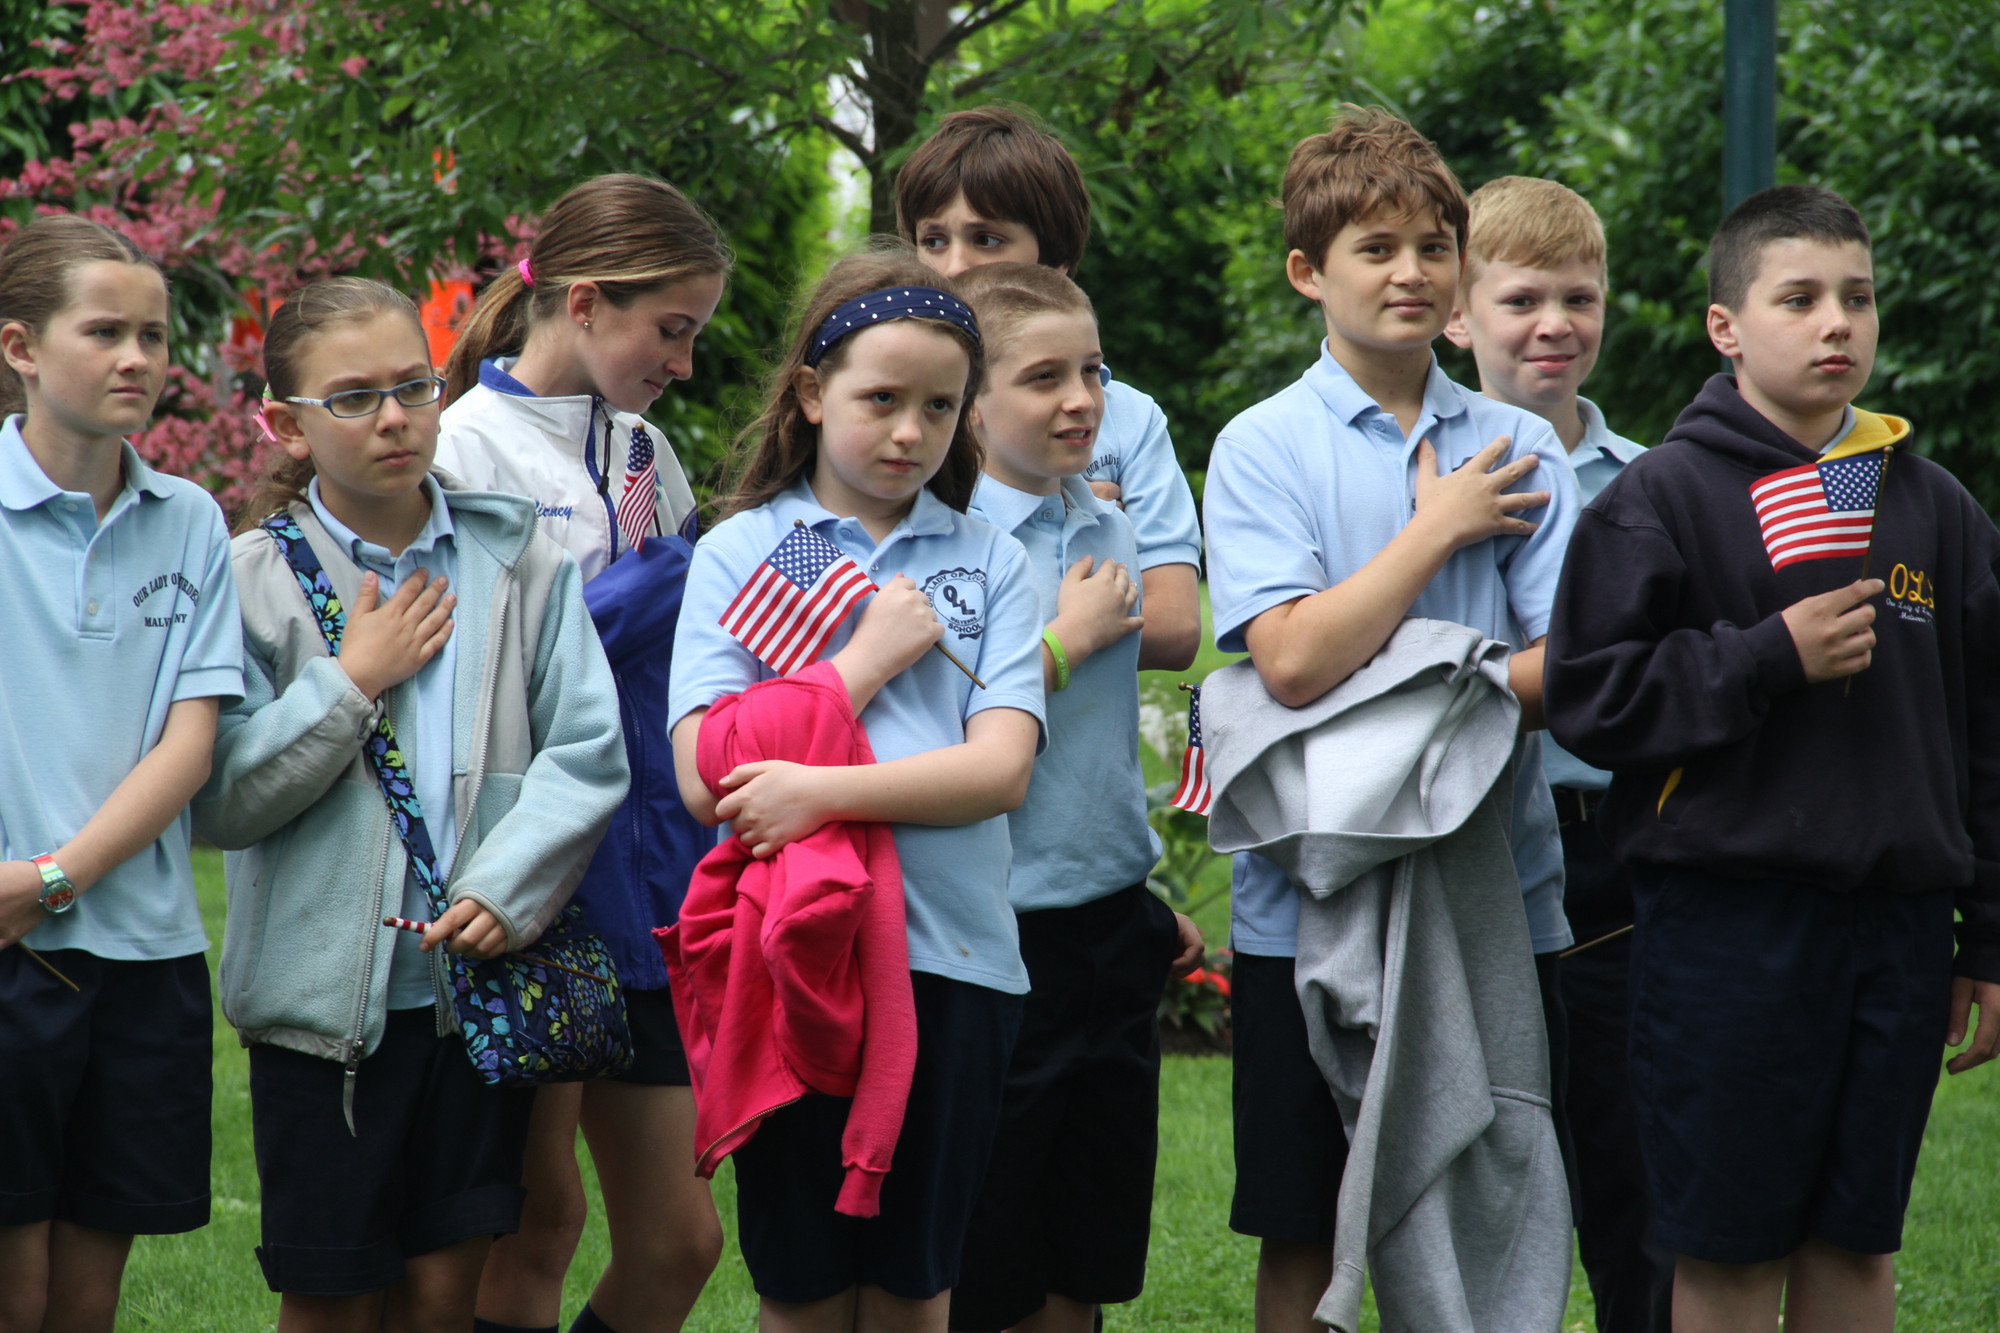 Fifth grade students from Our Lady of Lourdes School listen to the National Anthem. Residents, students and their families gathered at the gazebo in Malverne to celebrate Flag Day.